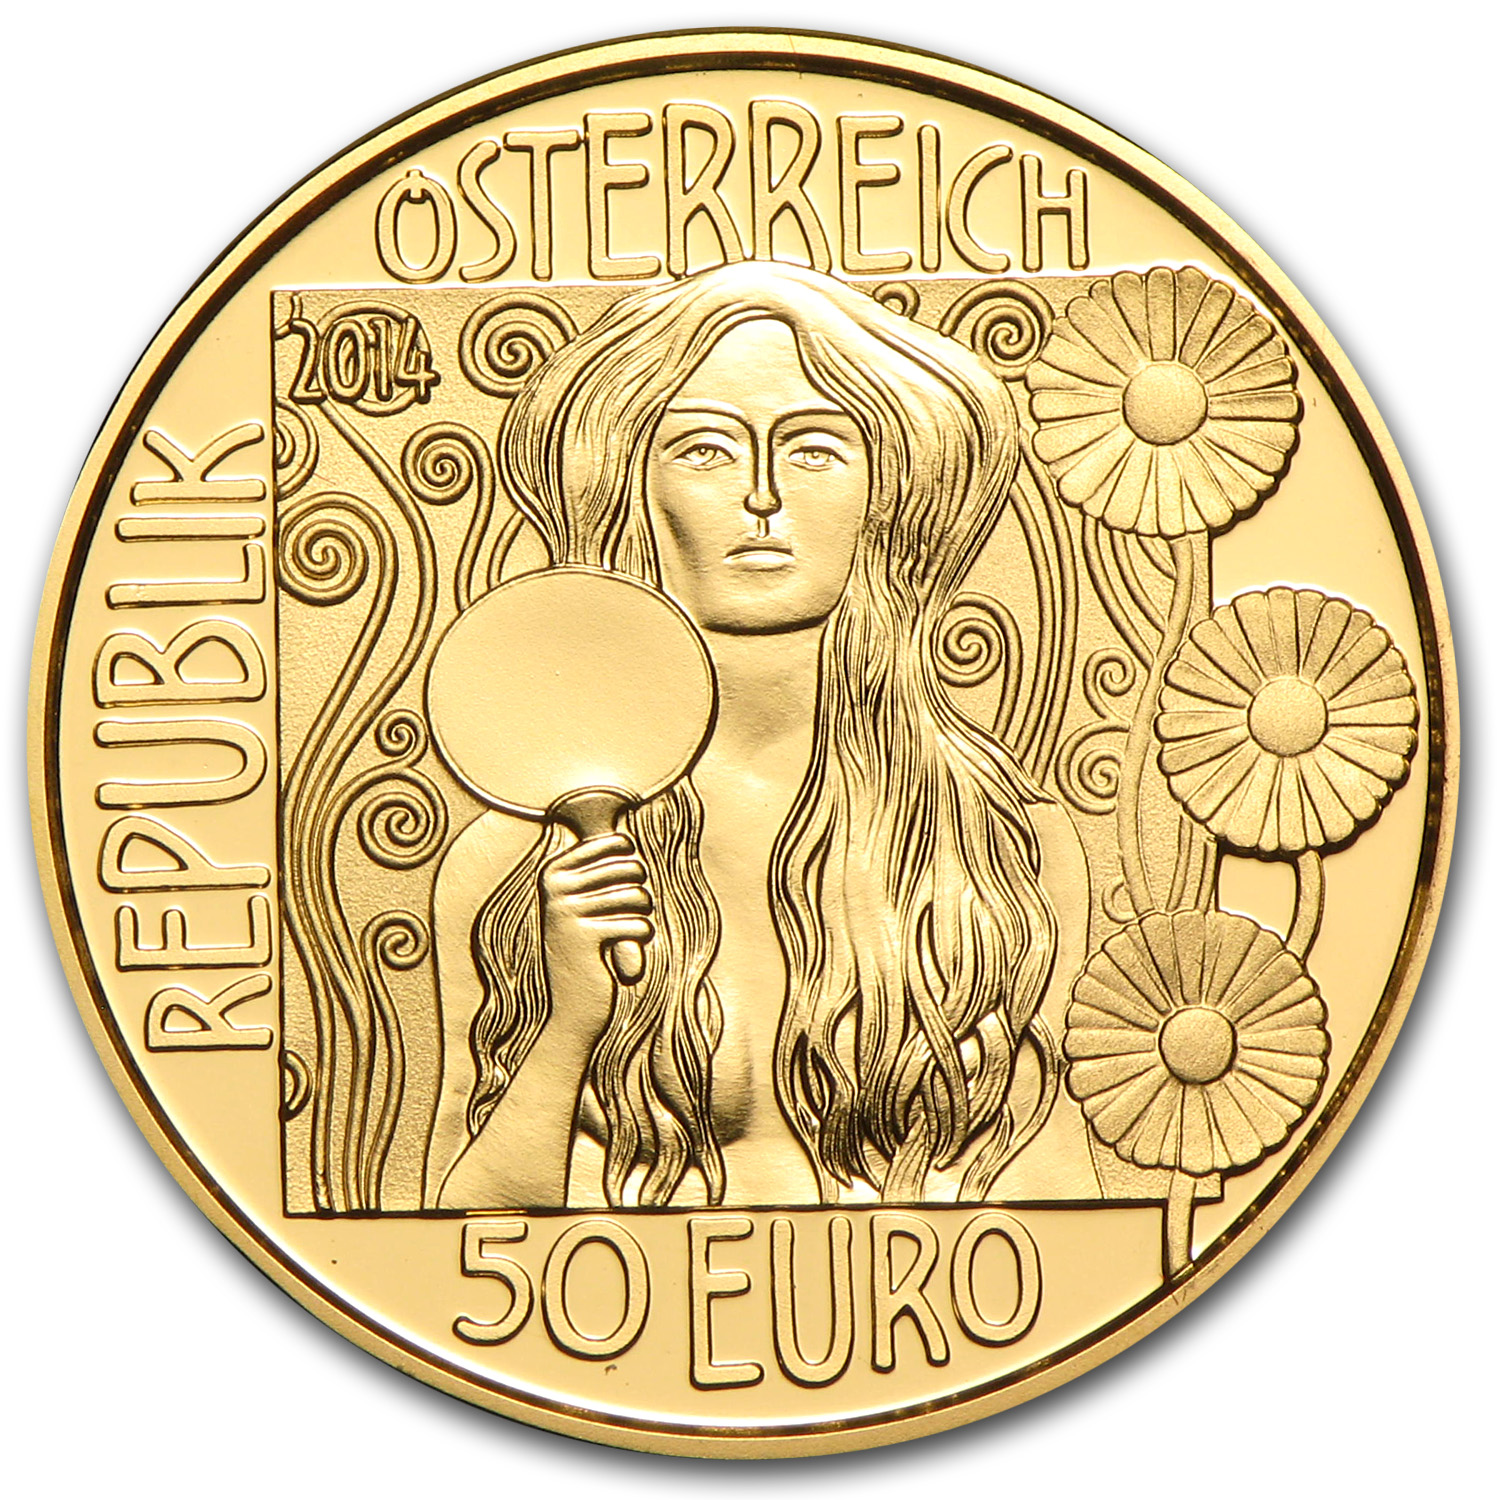 2014 Austrian Mint - Judith II 50 Euro Gold - Proof